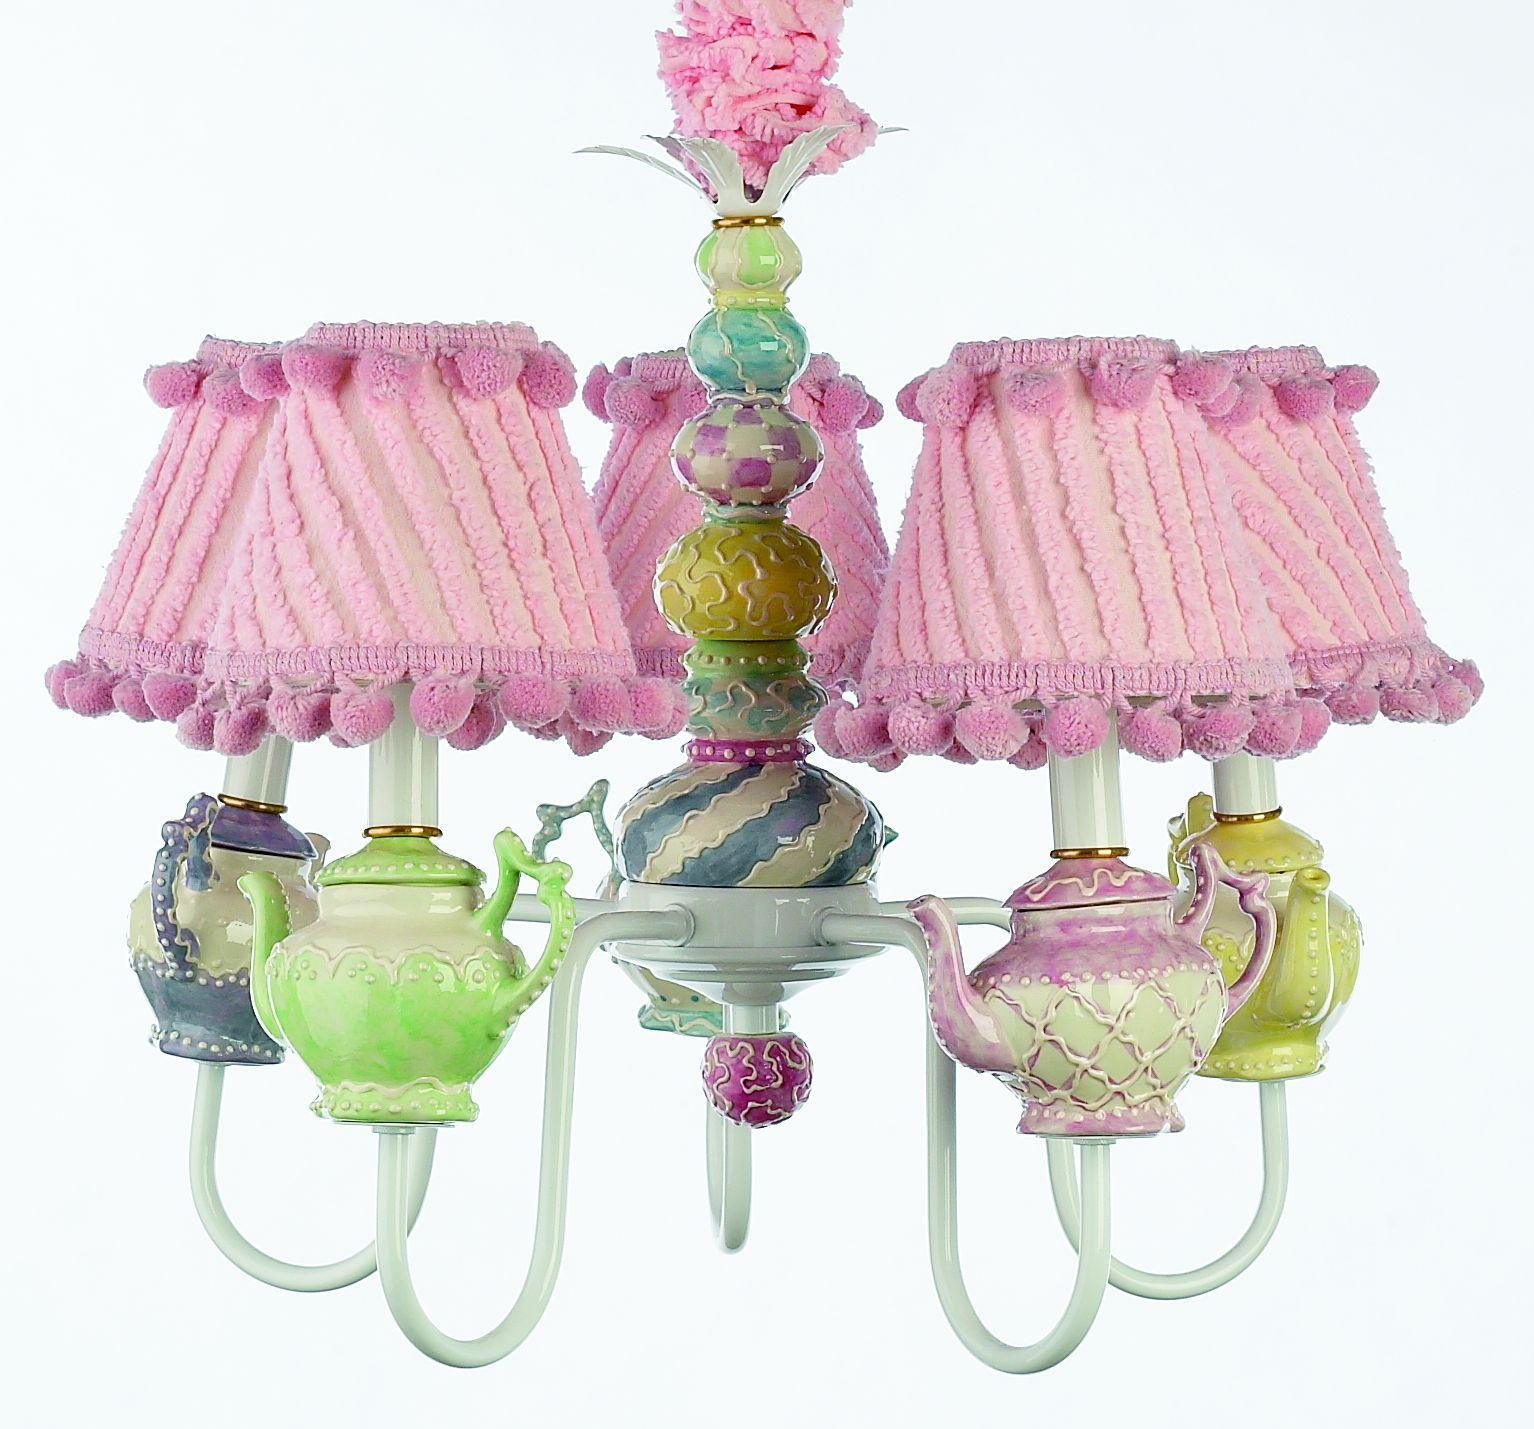 Shopzilla - Teapot Chandelier Chandeliers shopping - Home  Garden